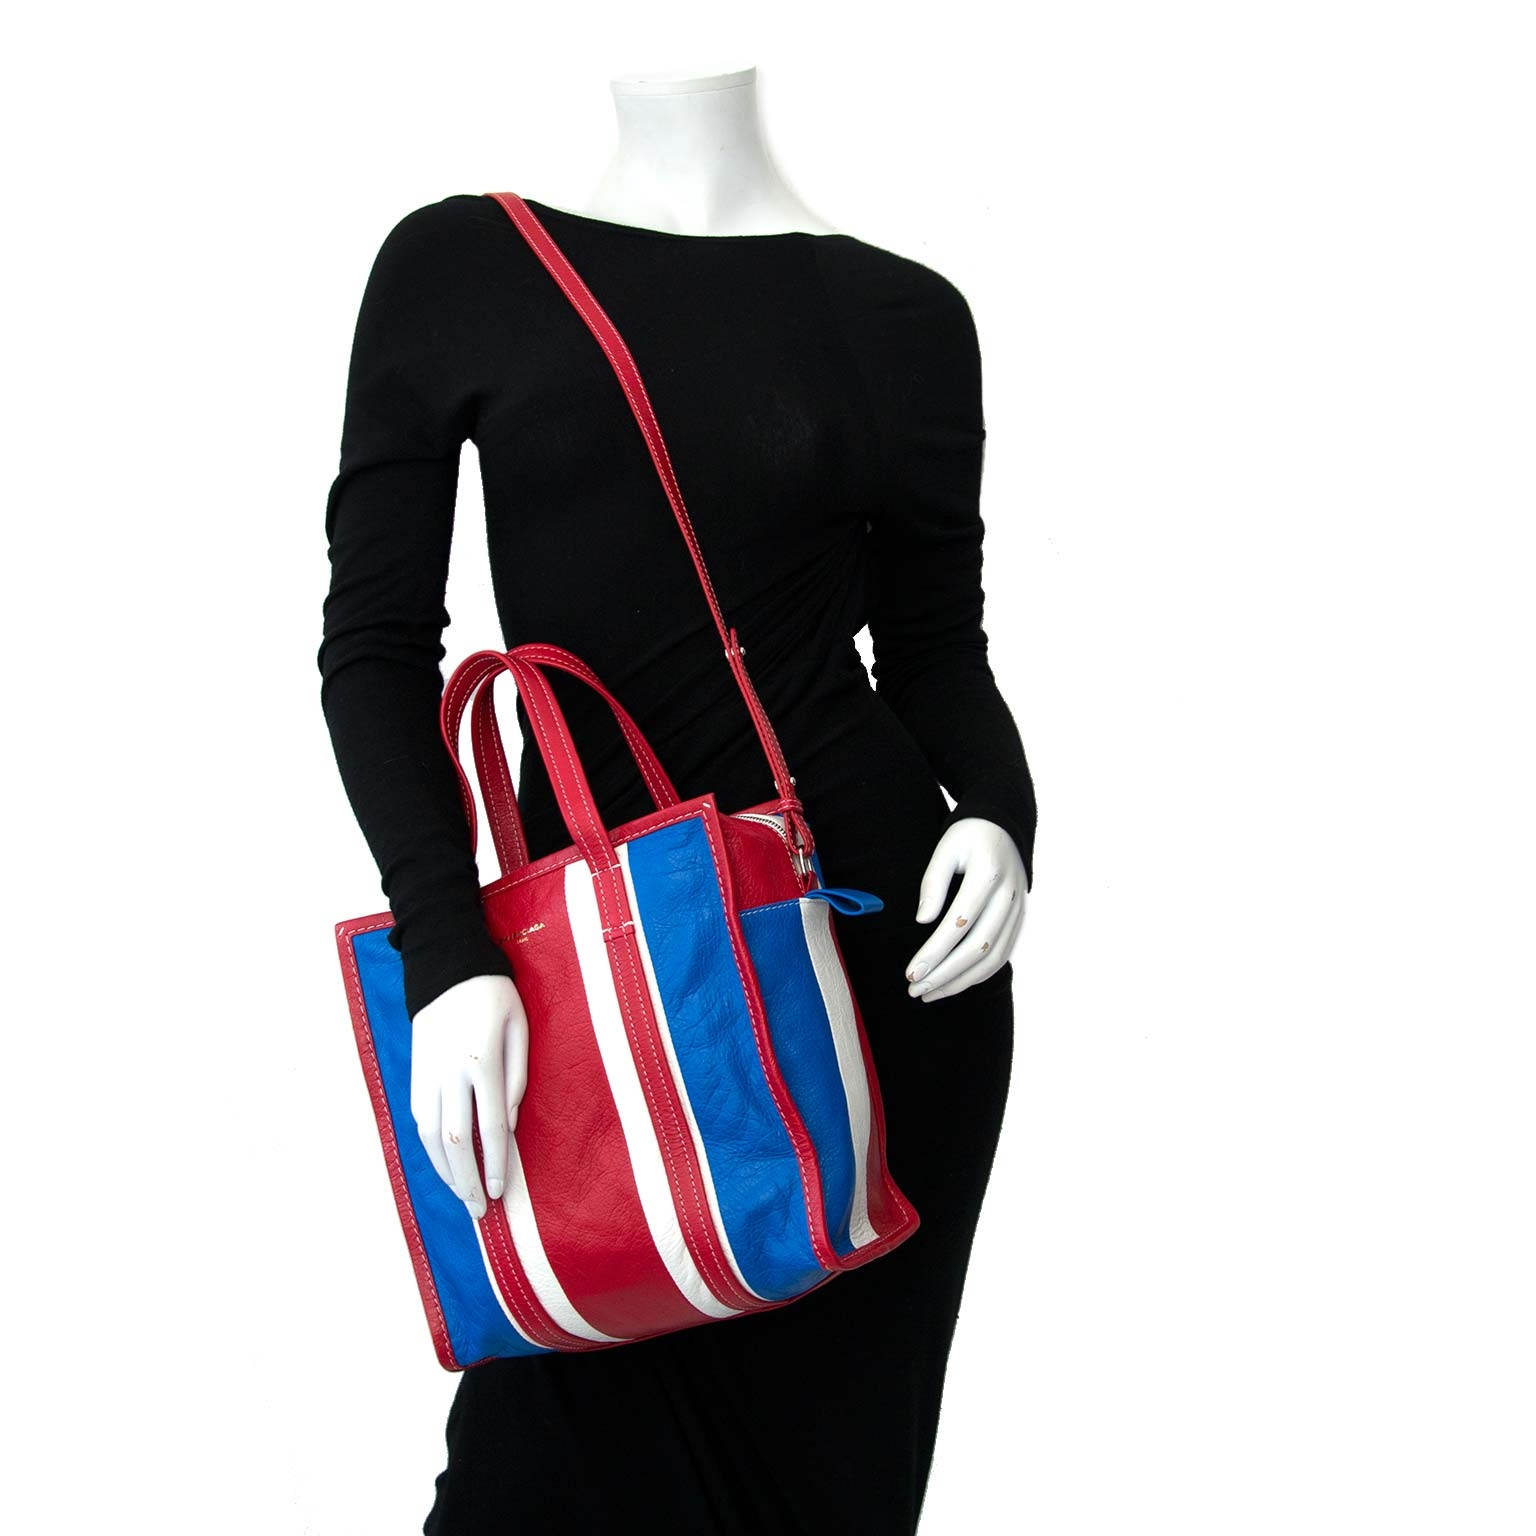 4108c4ebf1f7 ... Buy an authentic secondhand Balenciaga Small Shopper Bag at the right  price at LabelLOV vintage webshop